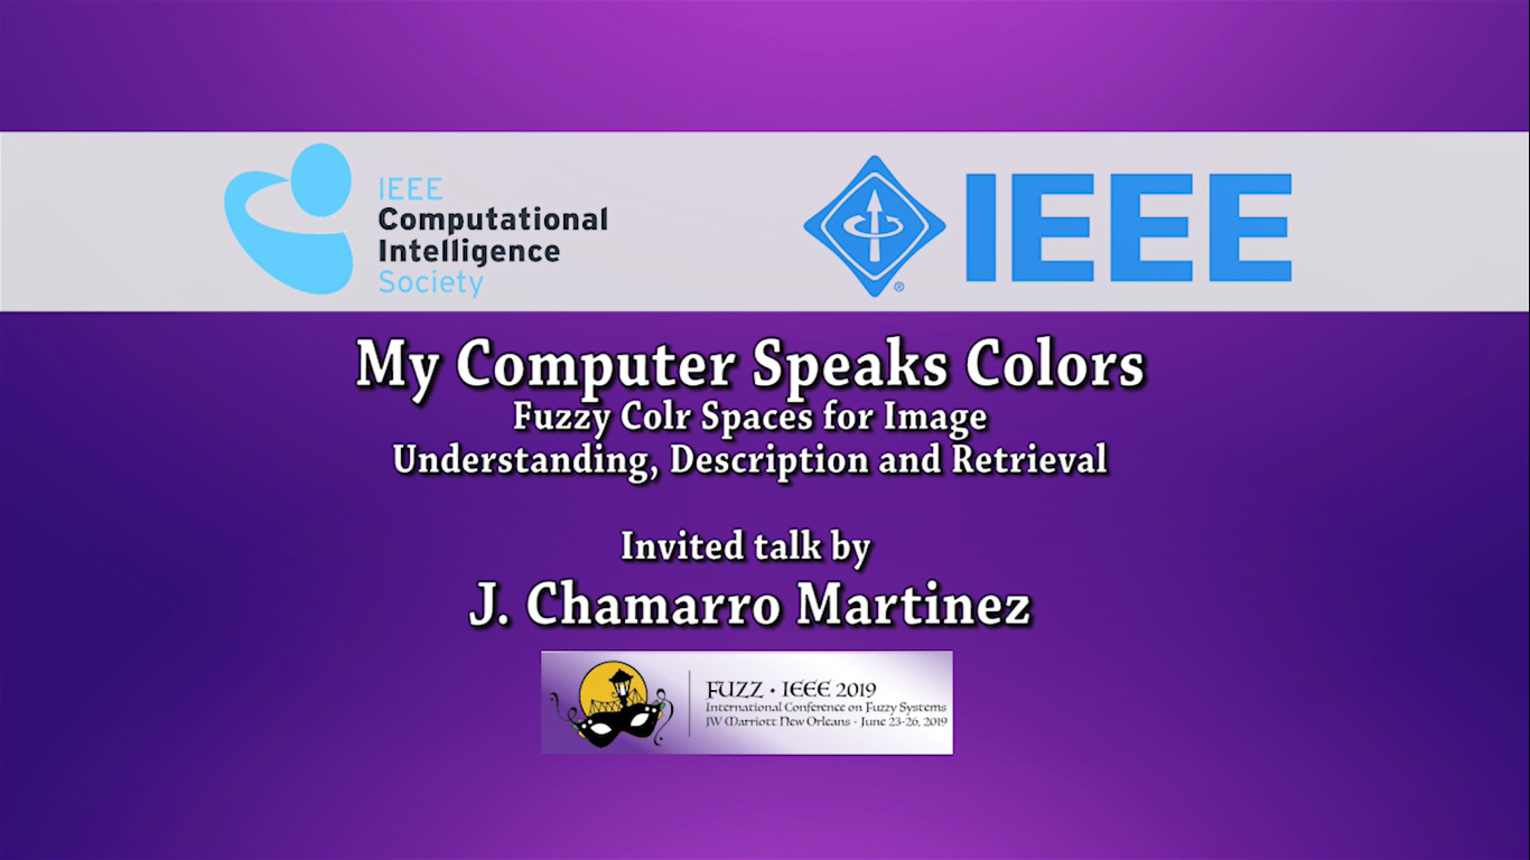 My Computer Speaks Colors! Fuzzy Color Spaces for Image Understanding, Description and Retrieval